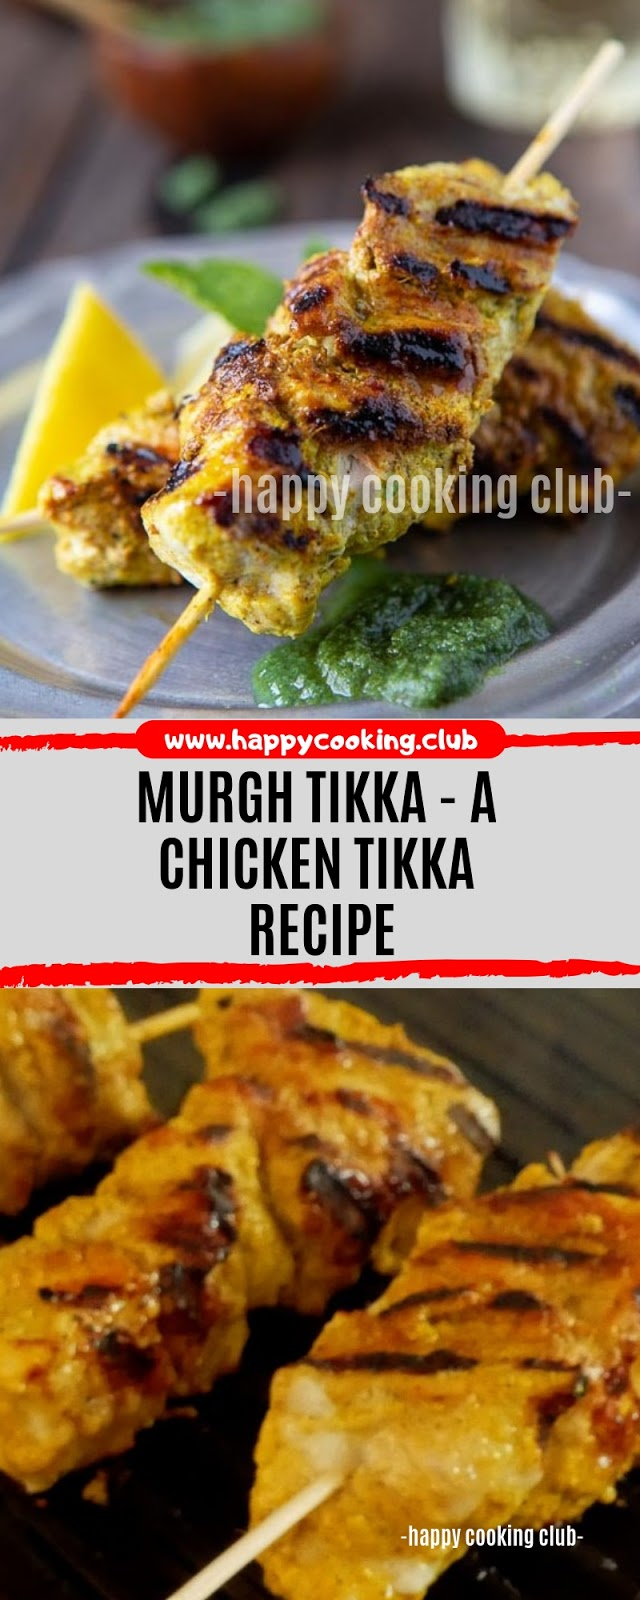 Murgh Tikka - A Chicken Tikka Recipe